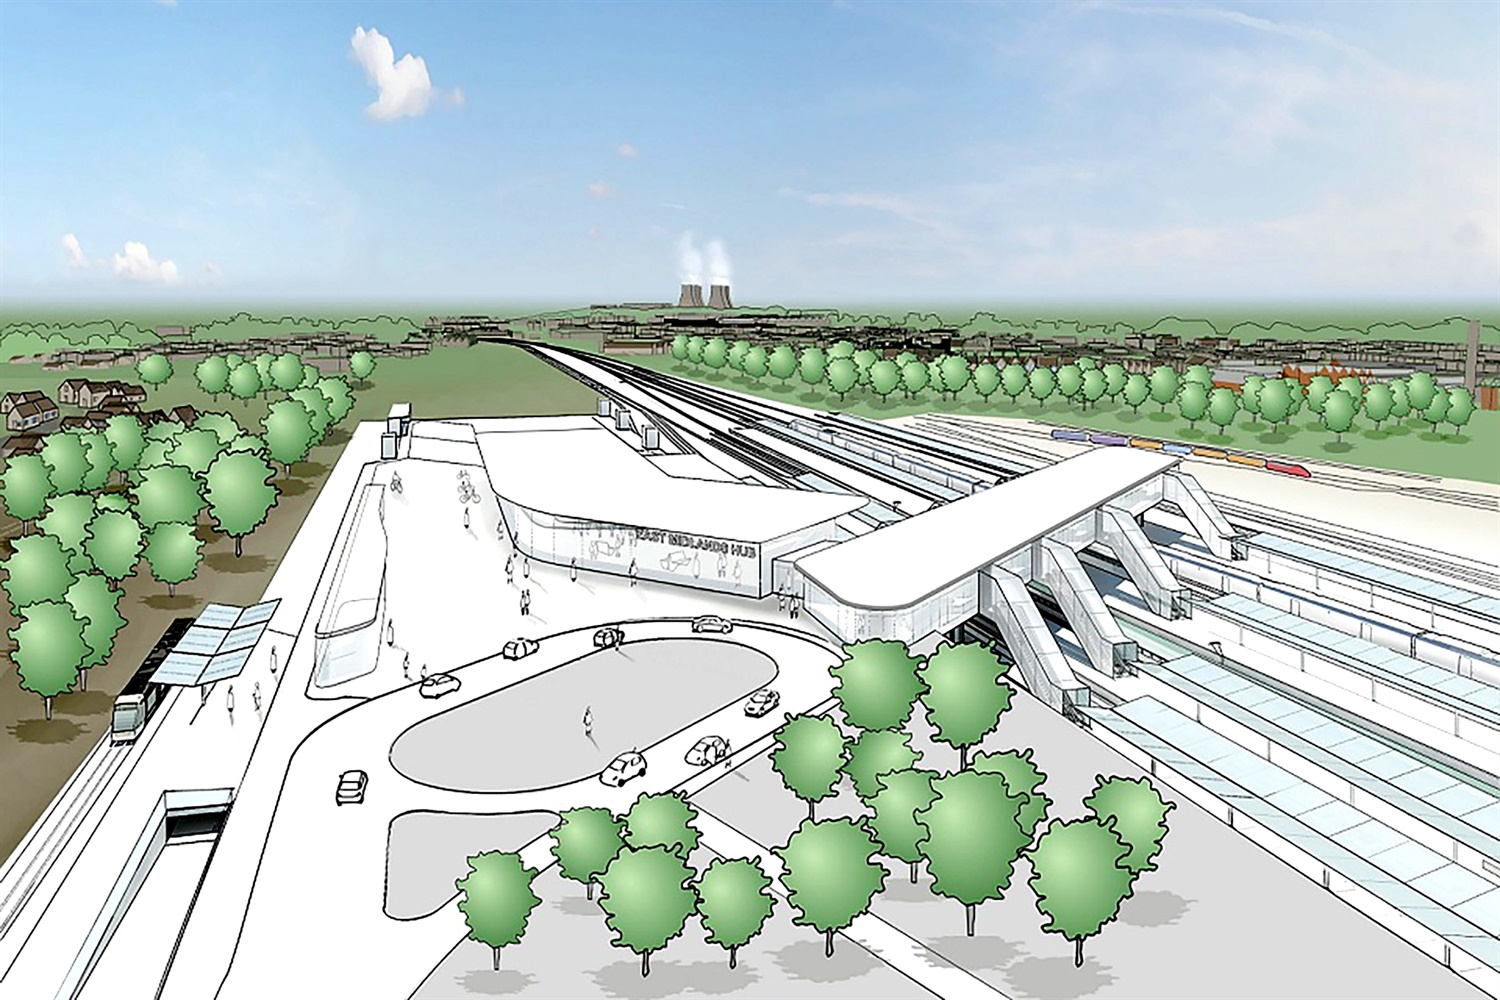 DfT deal means East Midlands HS2 station could open early